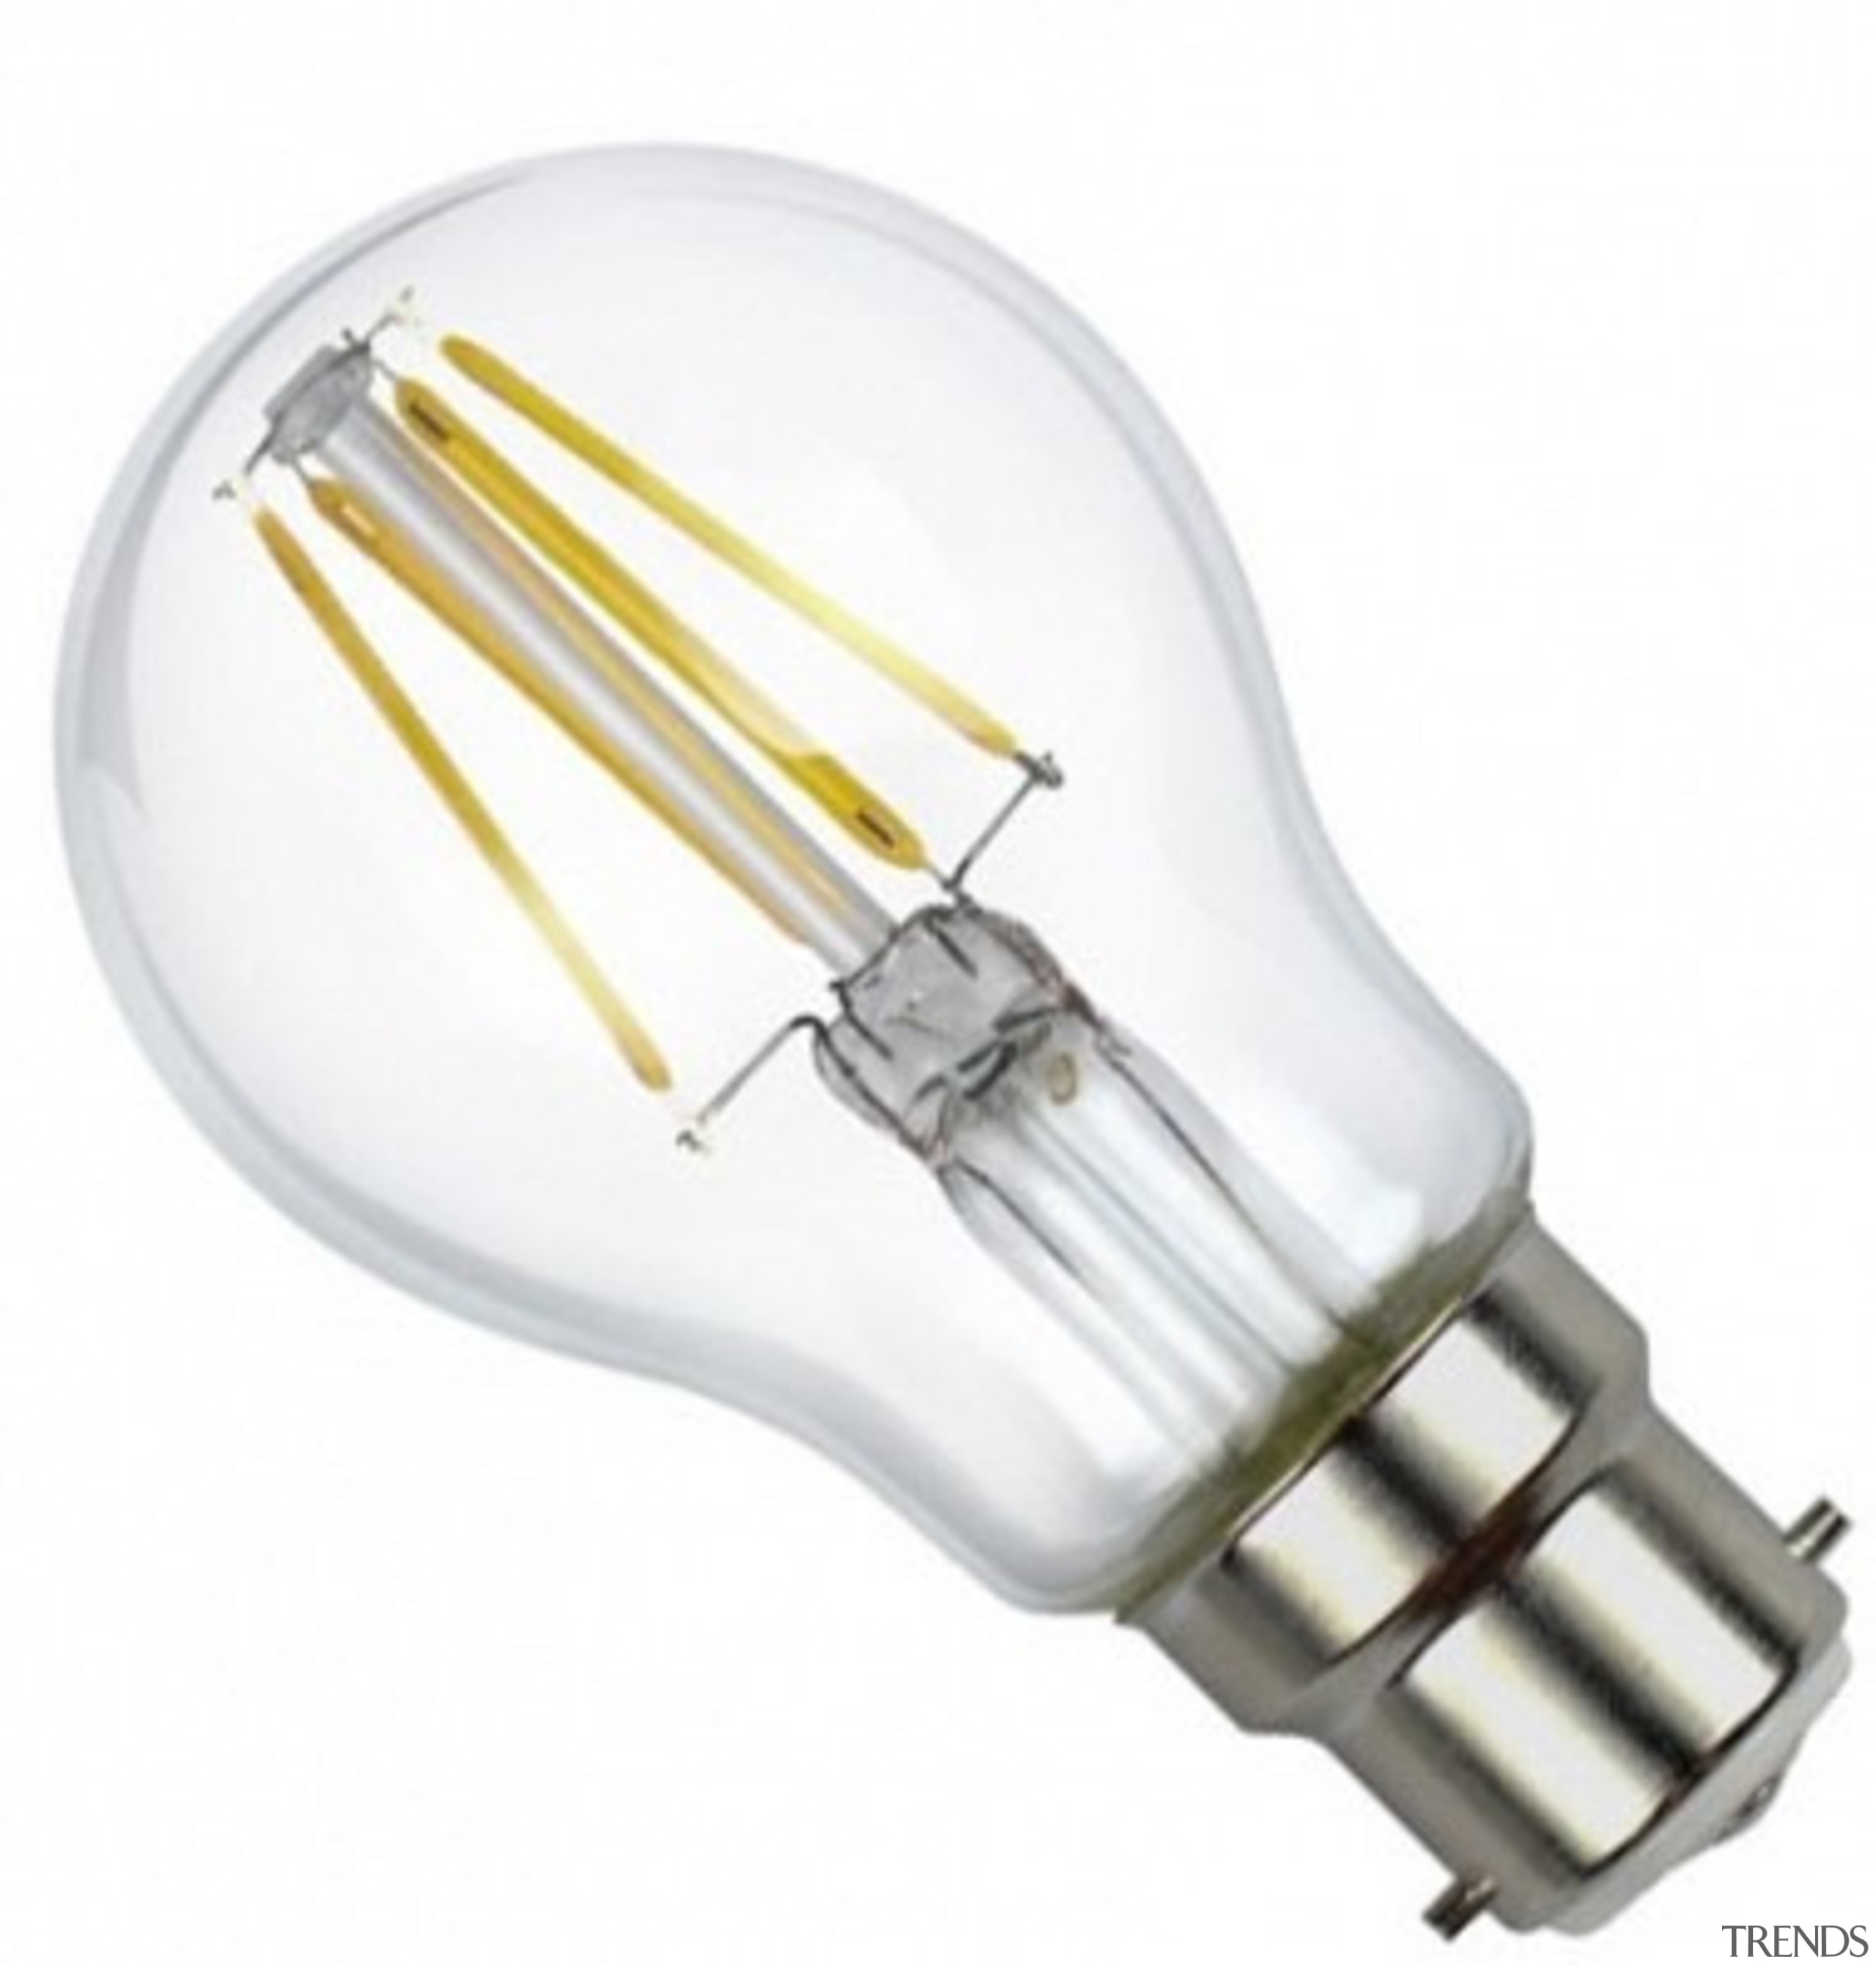 FeaturesFilament like LEDs give perfect light effect in product, product design, white